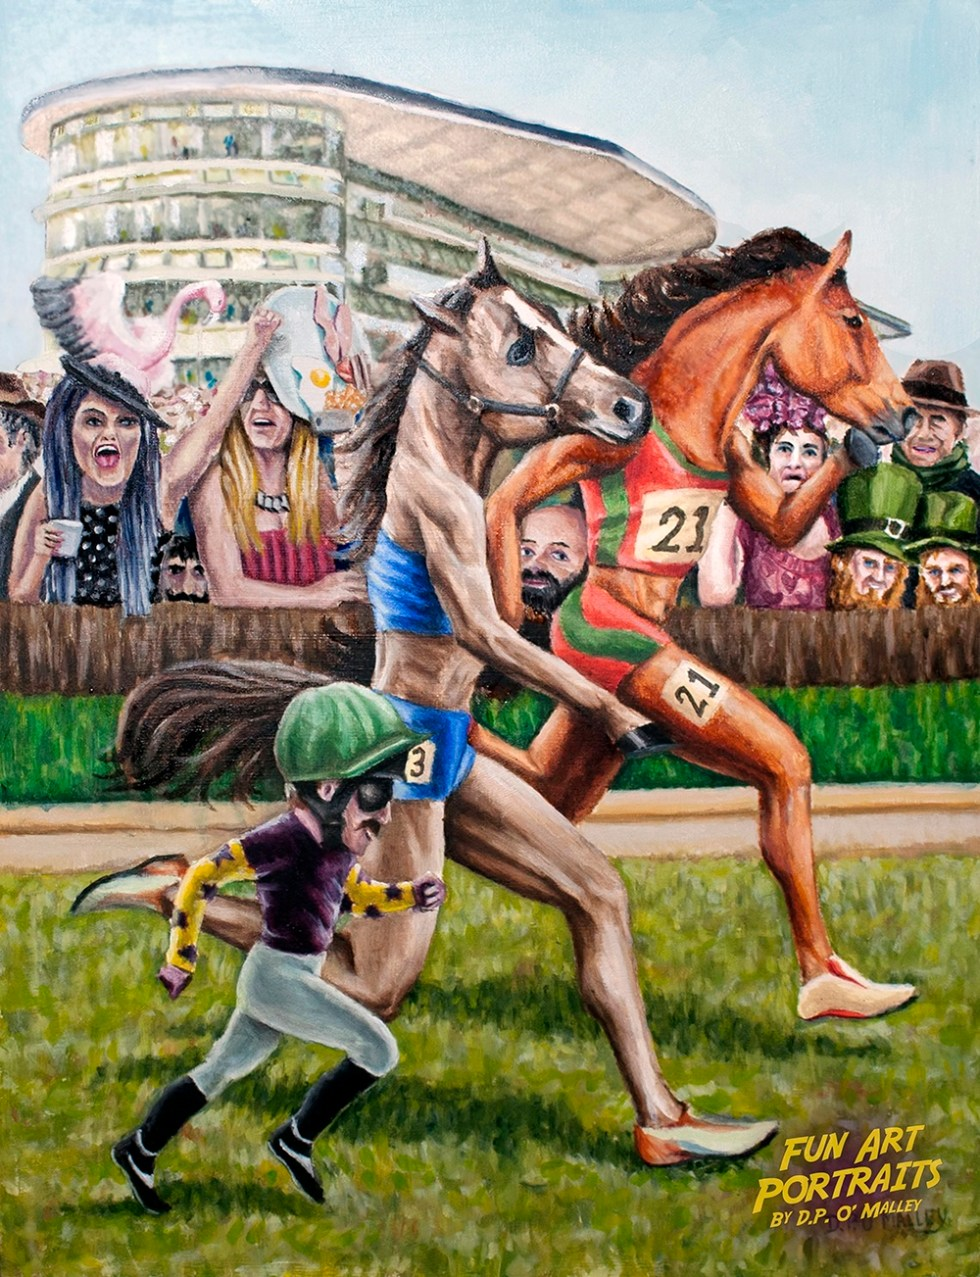 two horses and a jockey have a footrace in front of a crowd